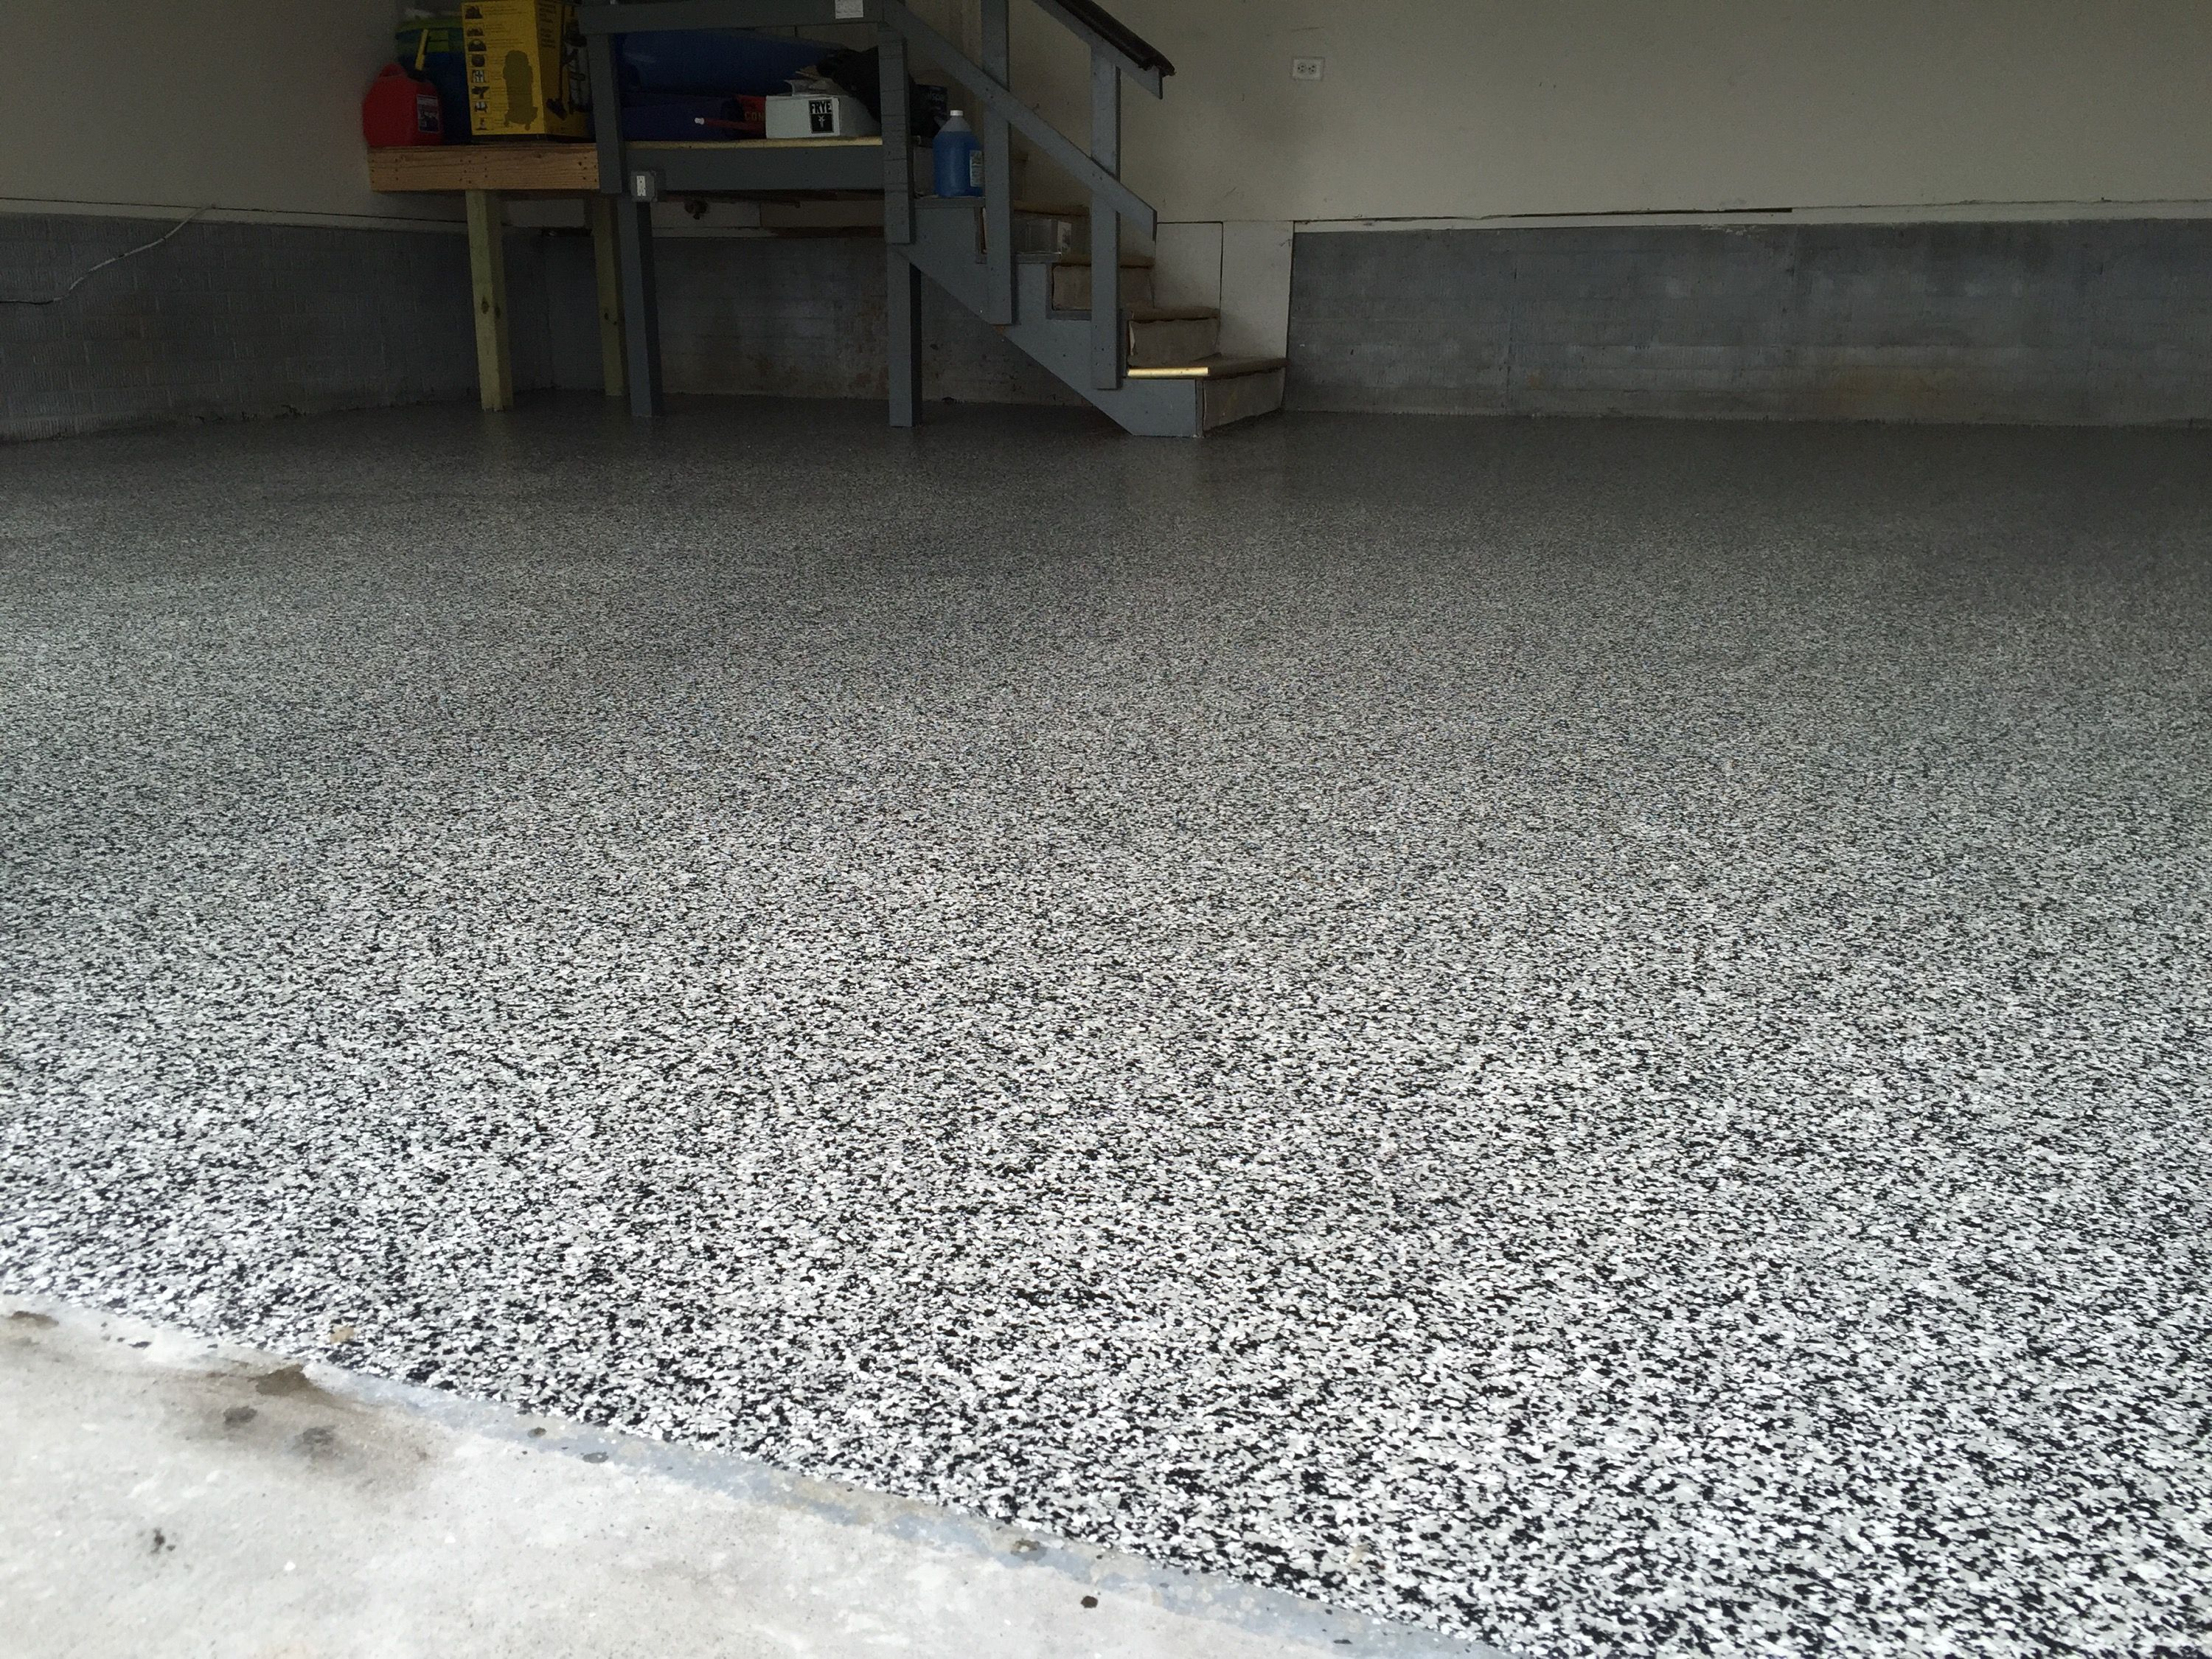 Tuxedo Epoxy Garage Floor Painted Floors Garage Floor Paint Epoxy Floor